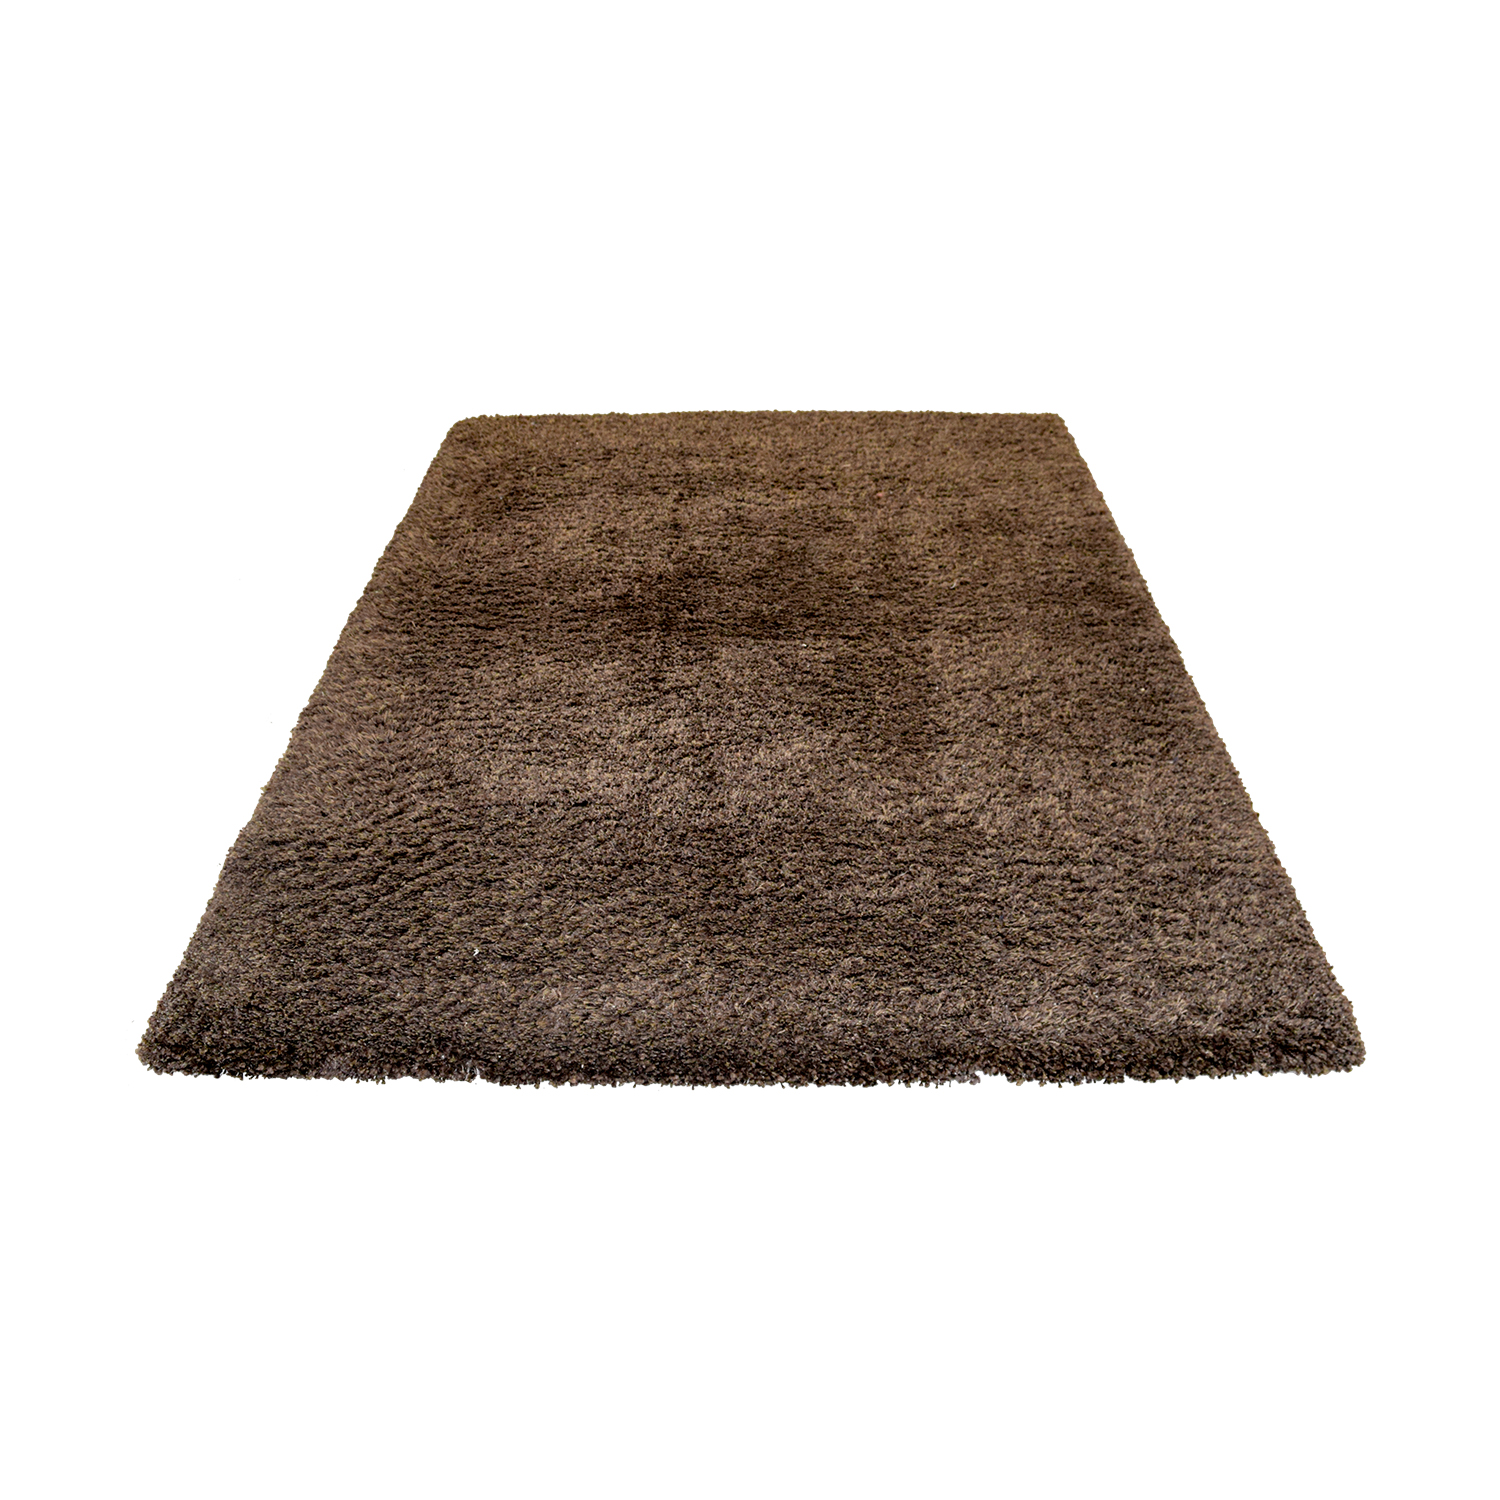 Crate & Barrel Crate & Barrel Brown Shag Rug coupon